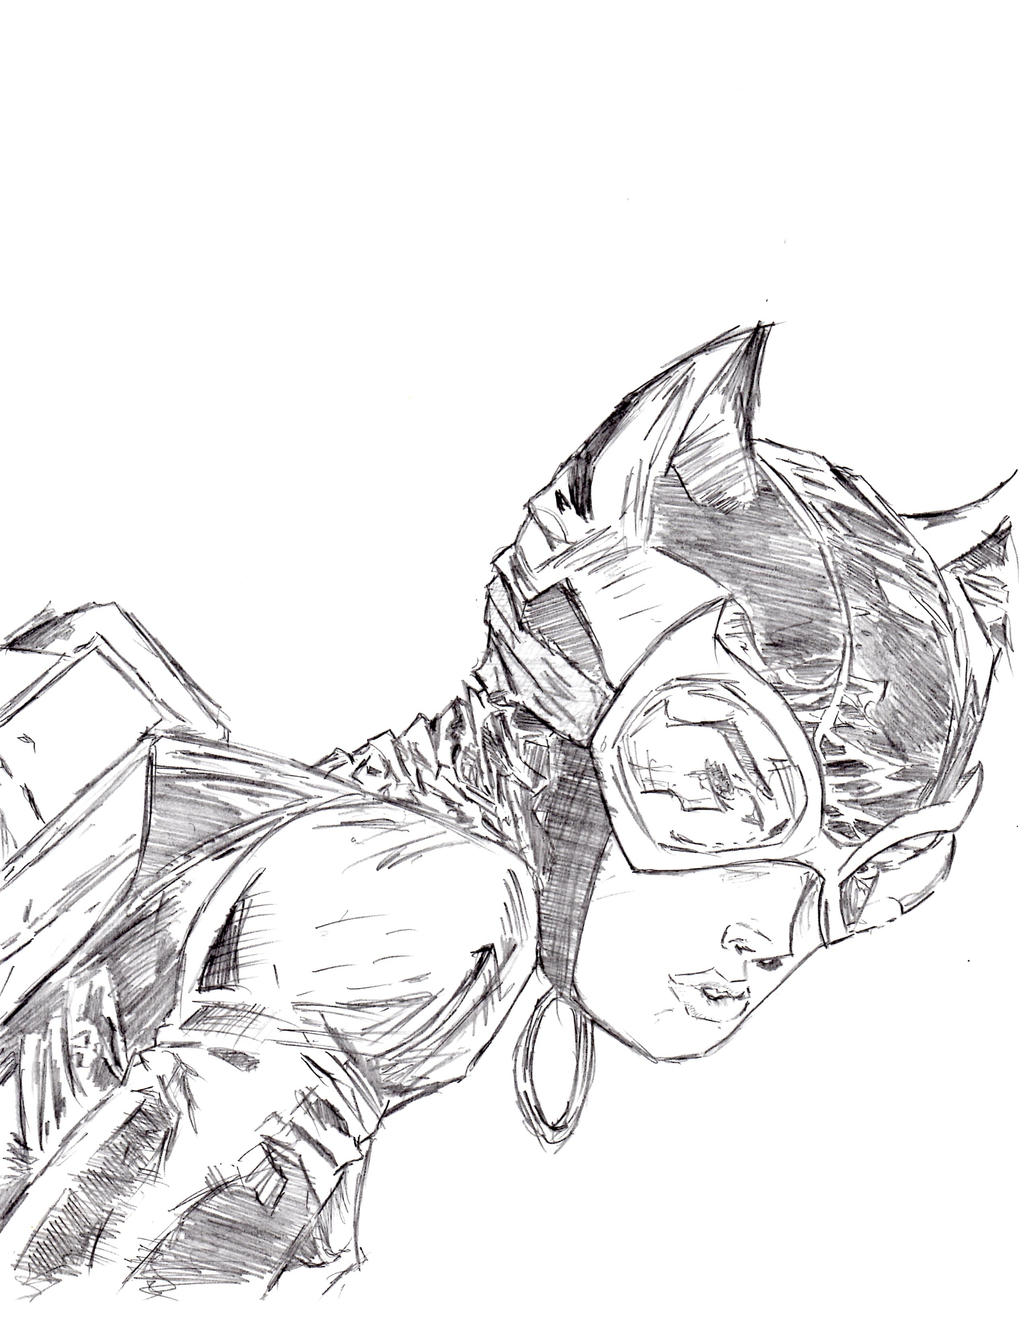 Jim Lee's Catwoman by thatonedude476 on DeviantArt